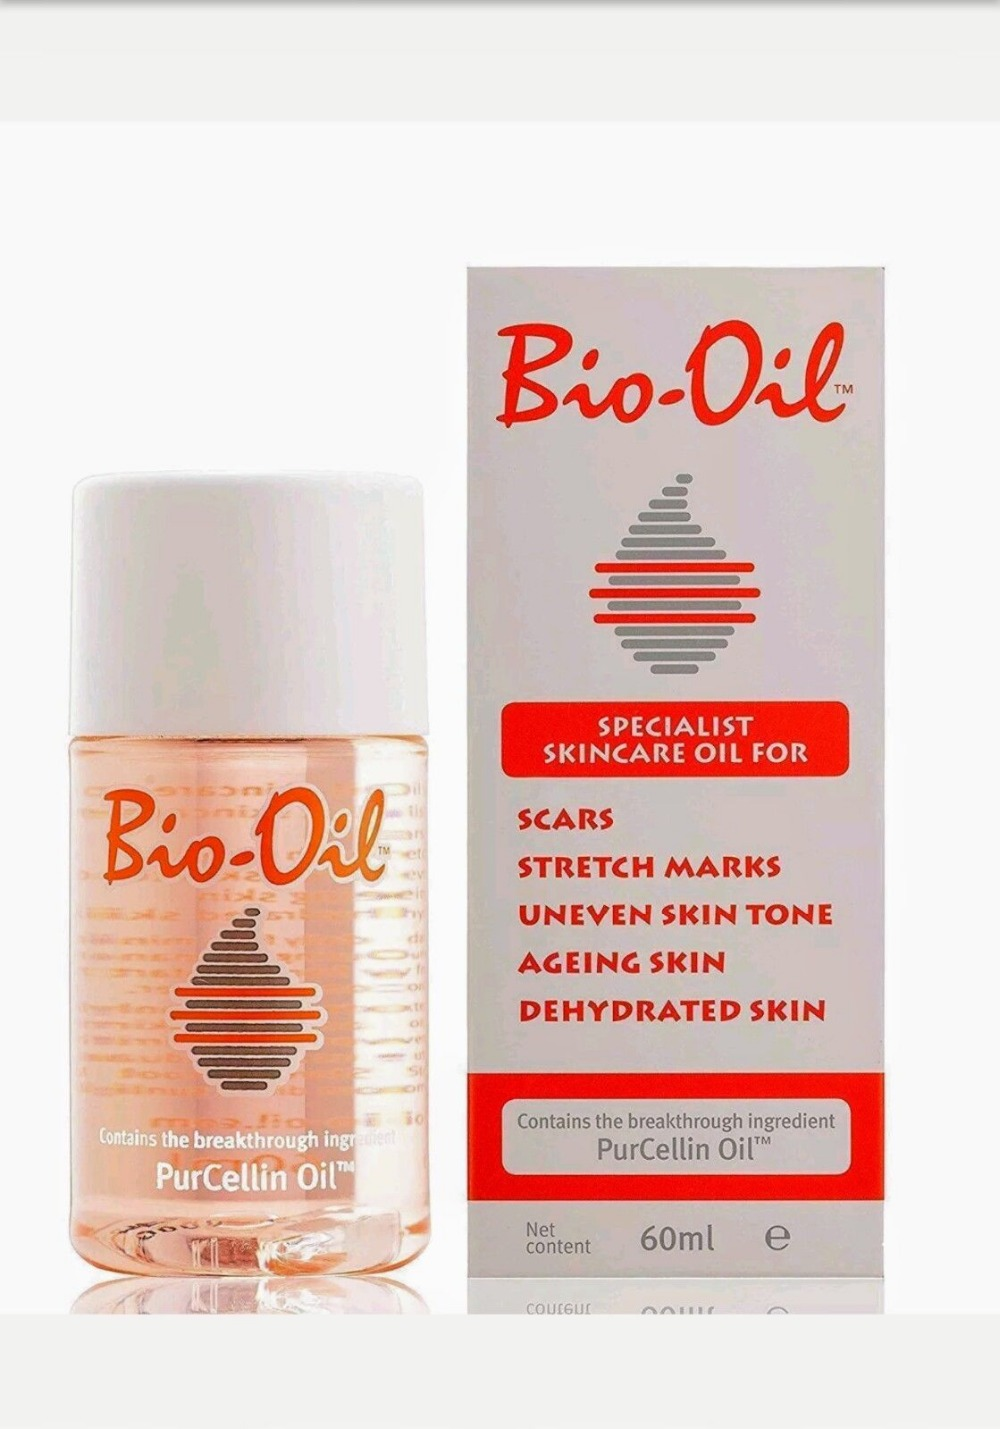 Bio Oil Purcellin Oil Skincare for Stretch Mark Scar Uneven Skin Tone - 60ml 60ml